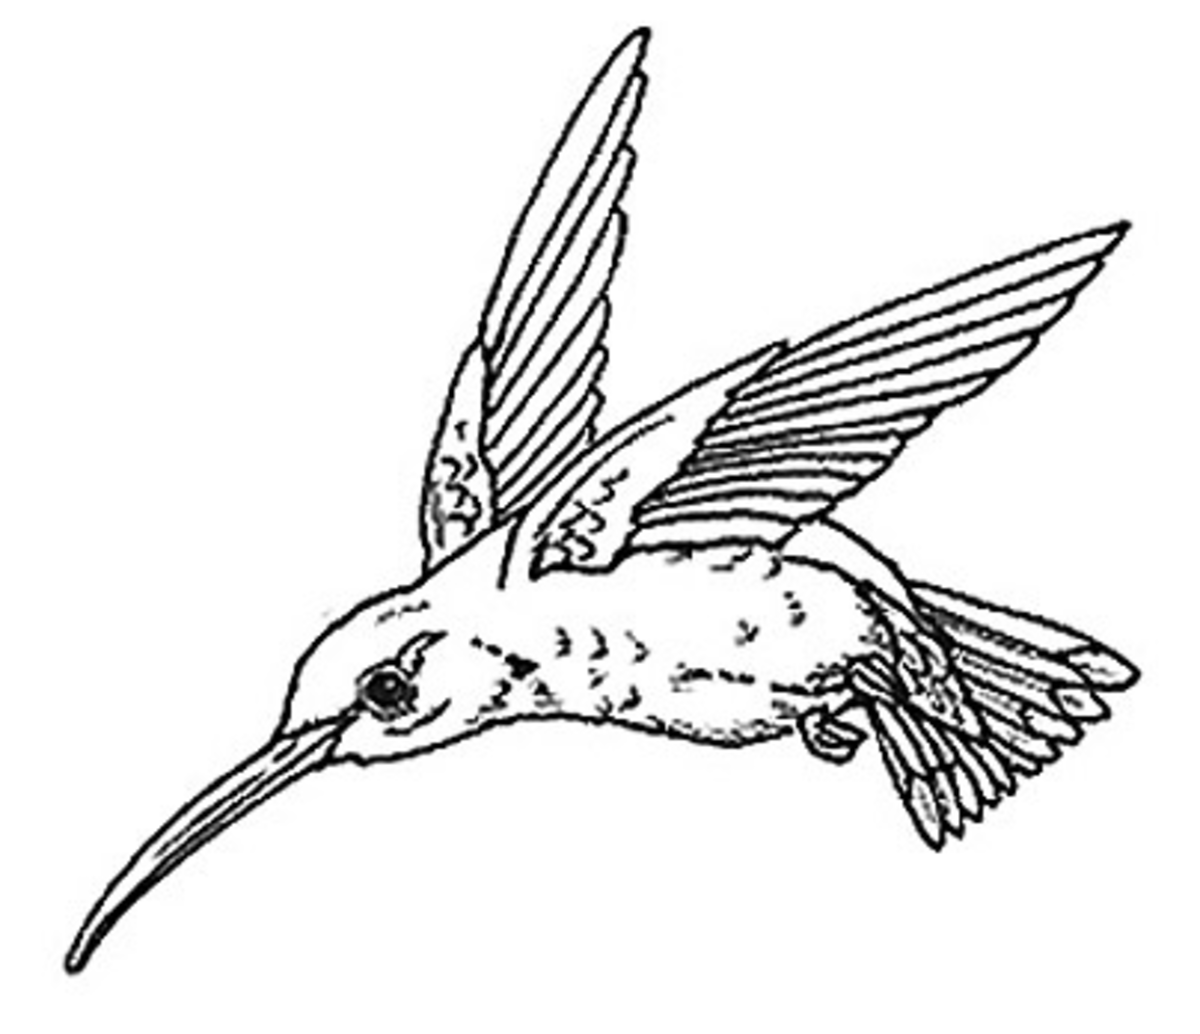 Colouring Pages Kookaburra : Free online pictures of birds to color for adults and kids hubpages